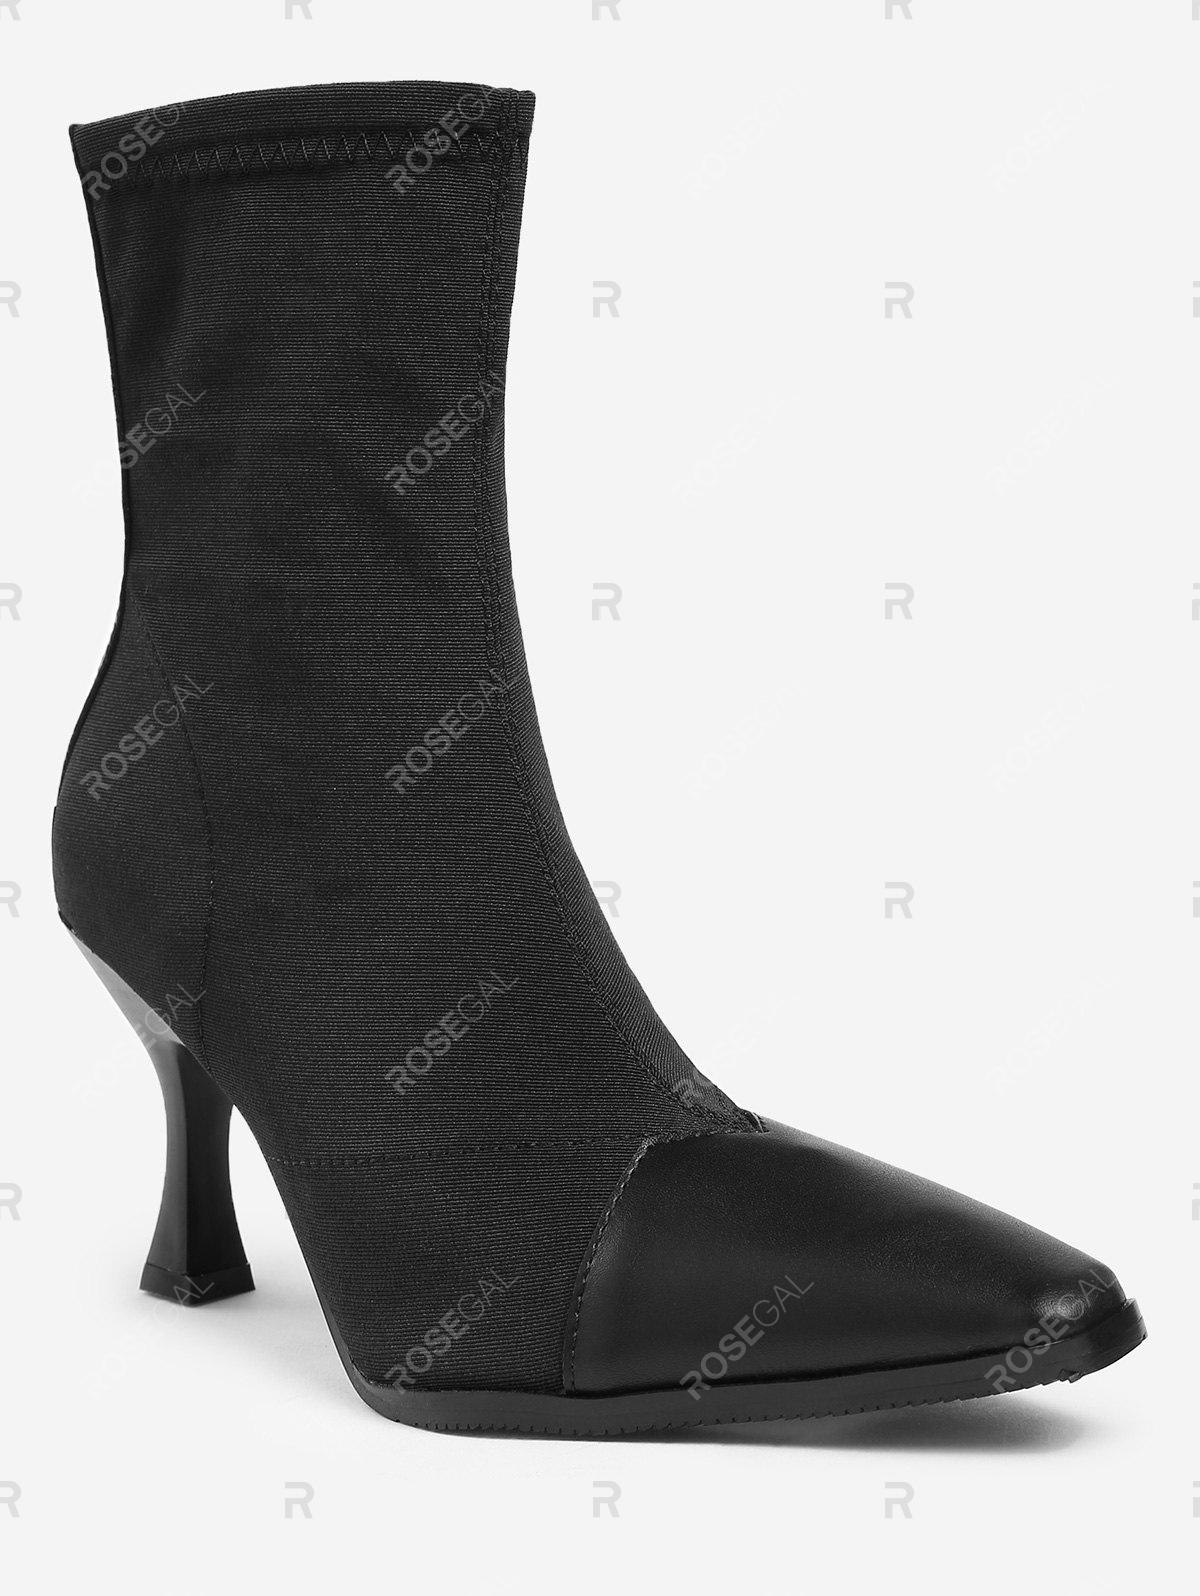 Discount Pointed Toe Cap High Heel Ankle Boots